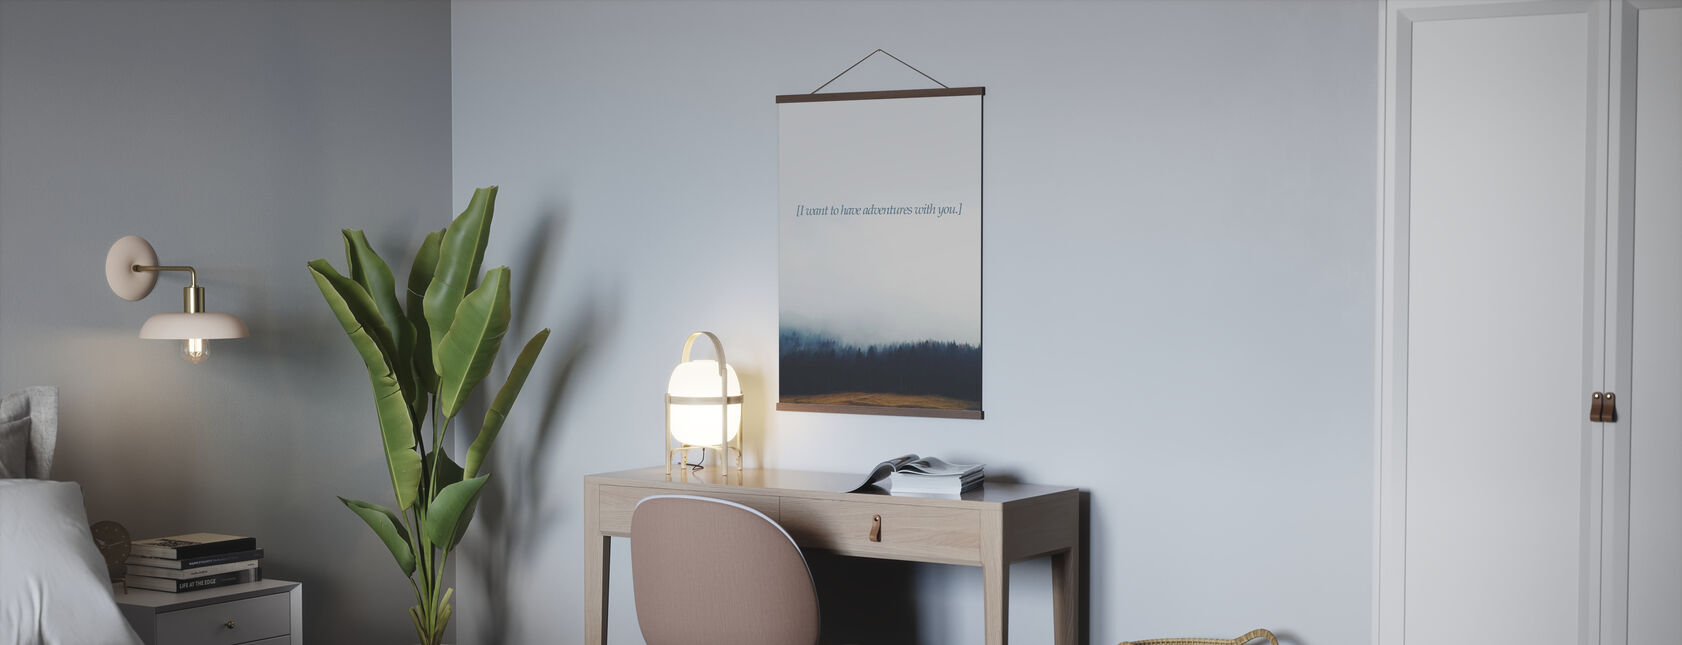 Adventures with You - Poster - Office